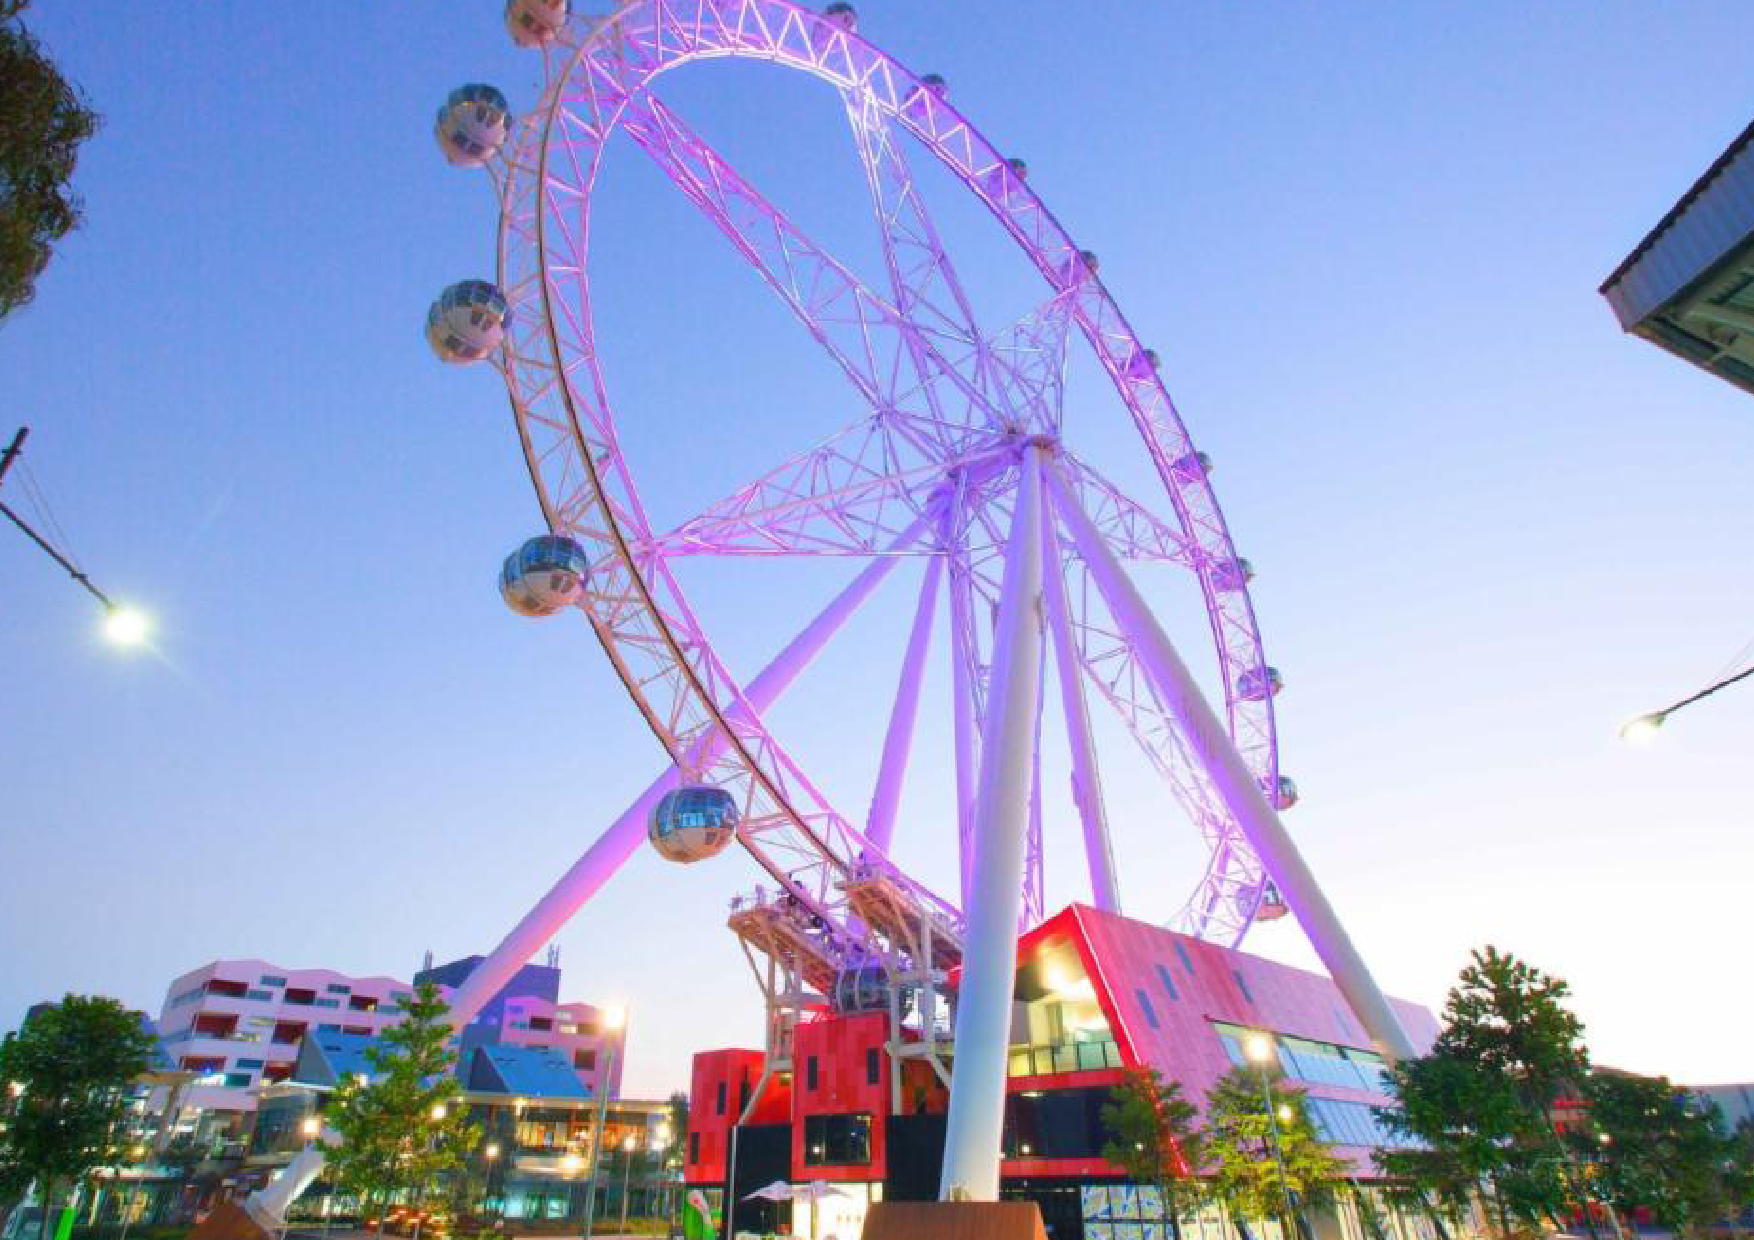 Ferris Wheel at carnival - School holiday favourite